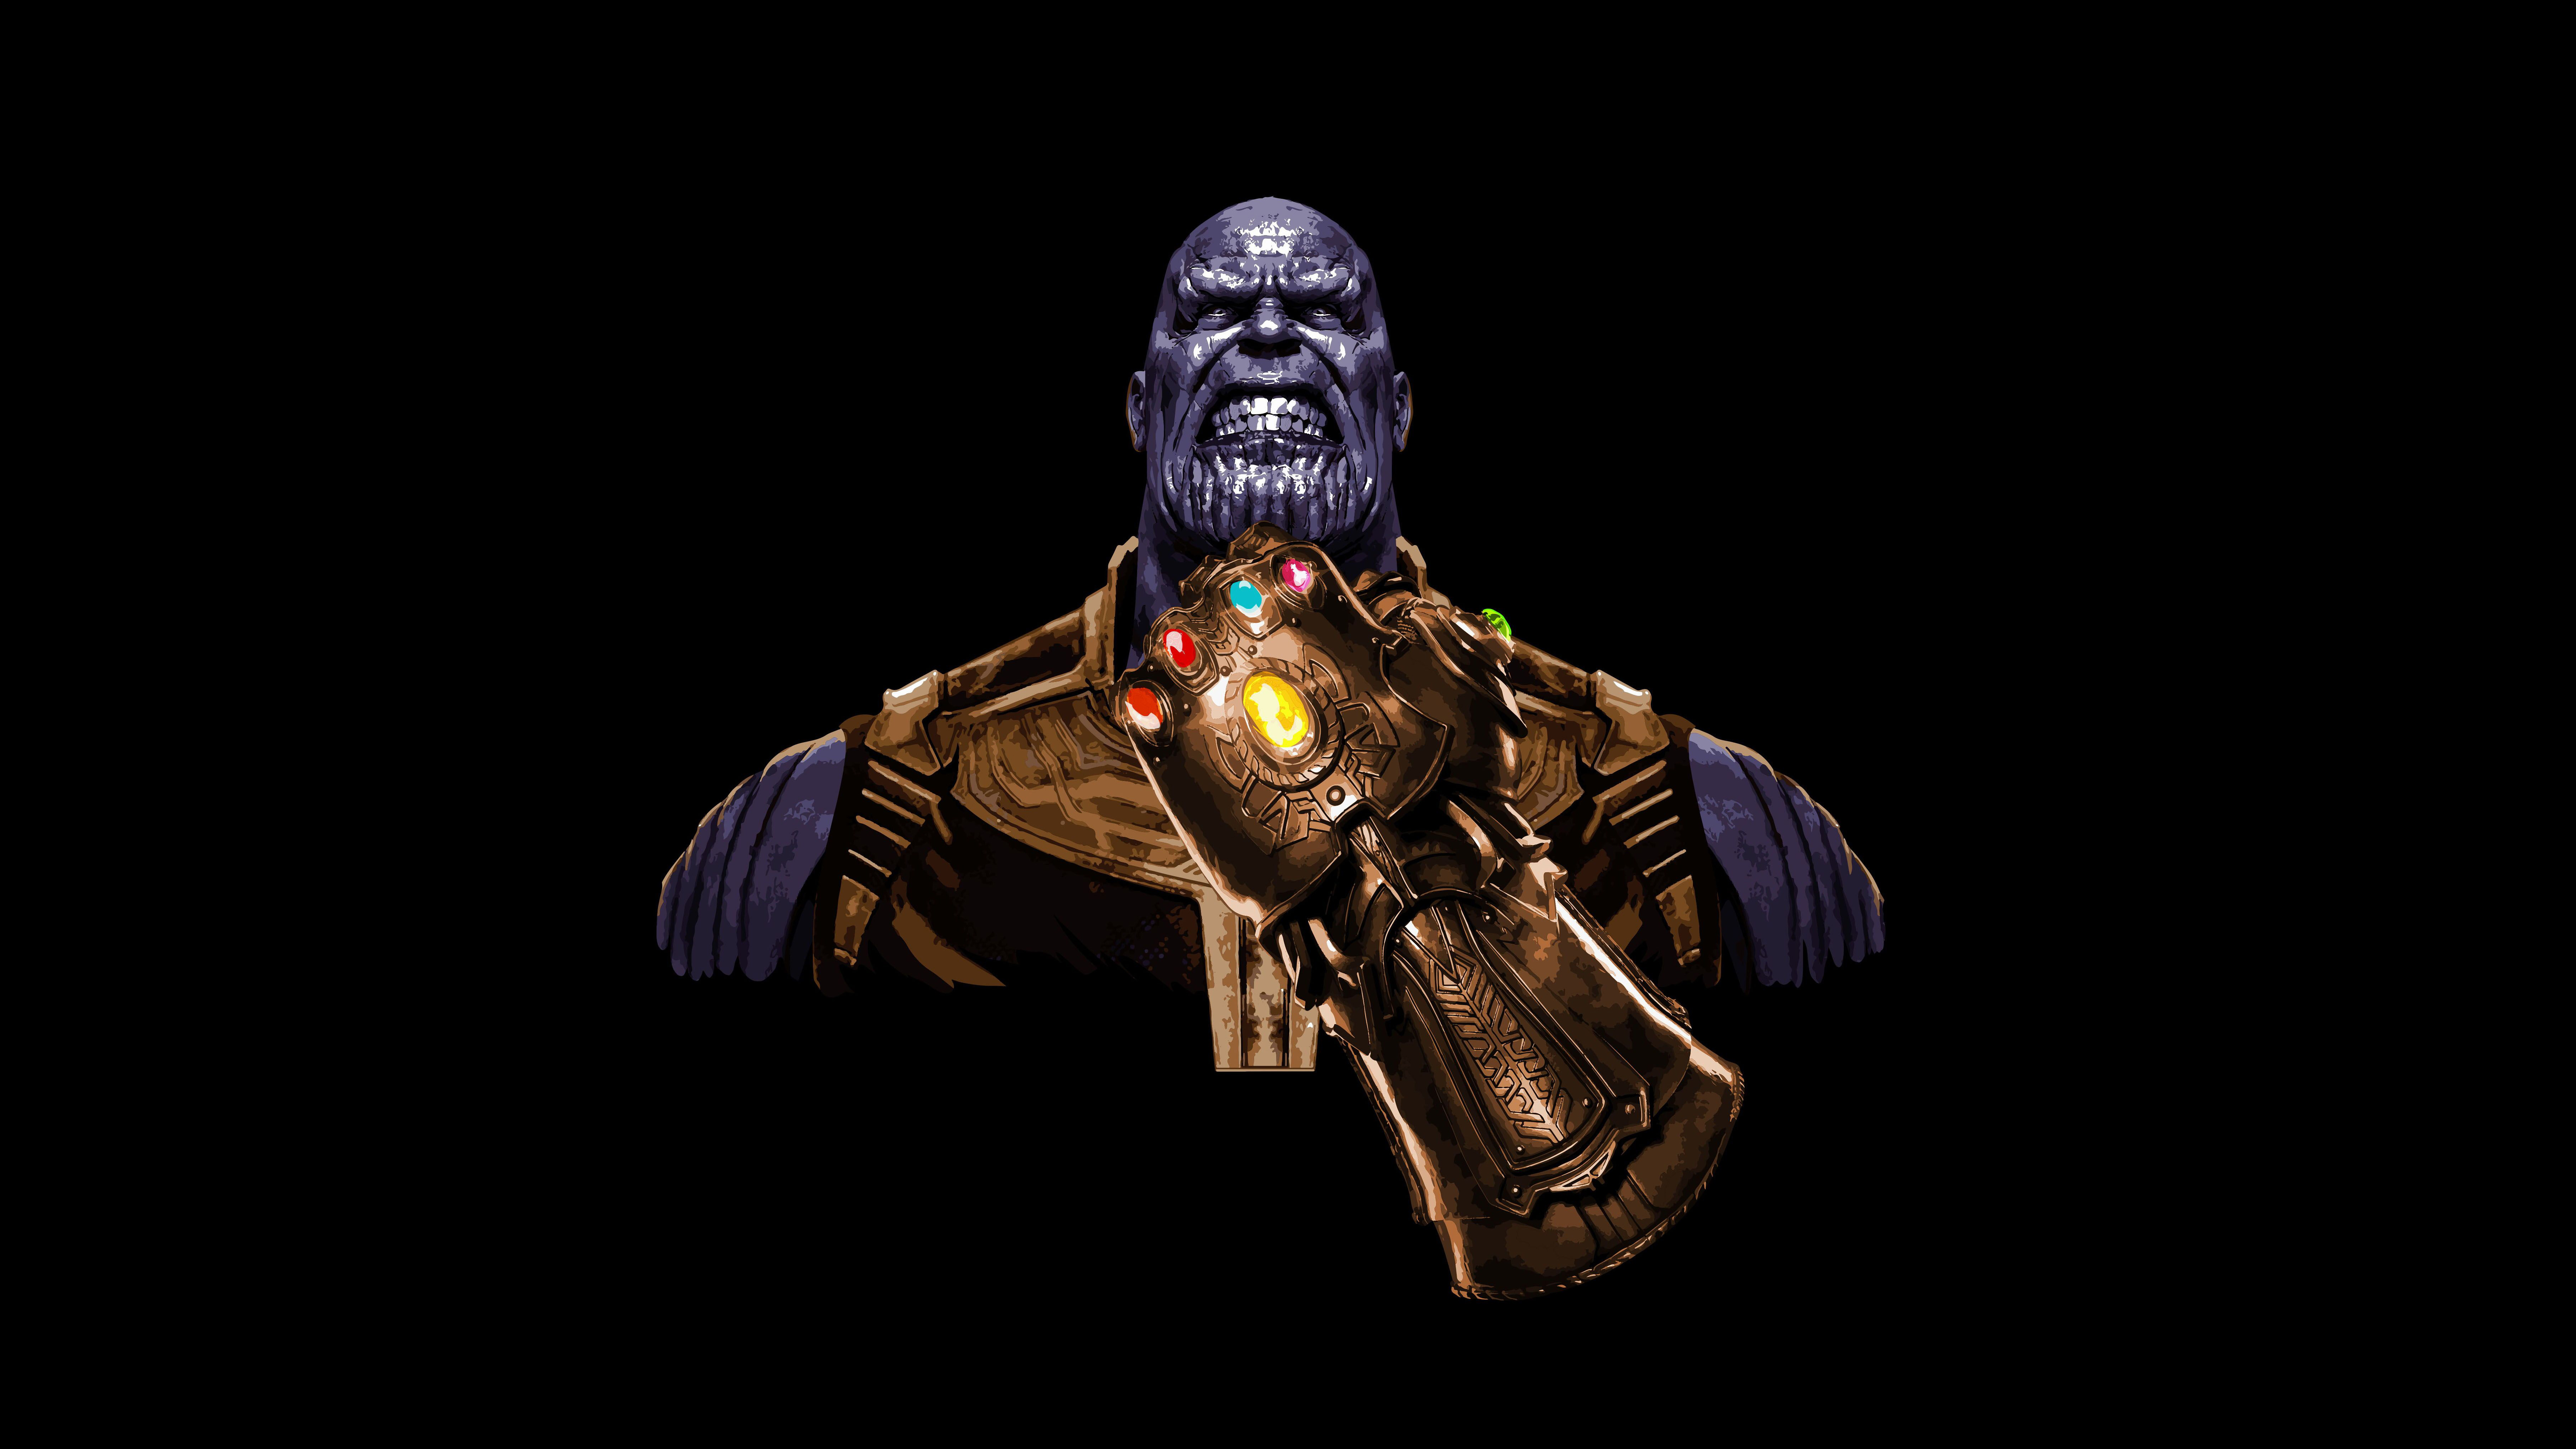 Thanos Hd Wallpaper: 3840x2160 Thanos 8k 4k HD 4k Wallpapers, Images